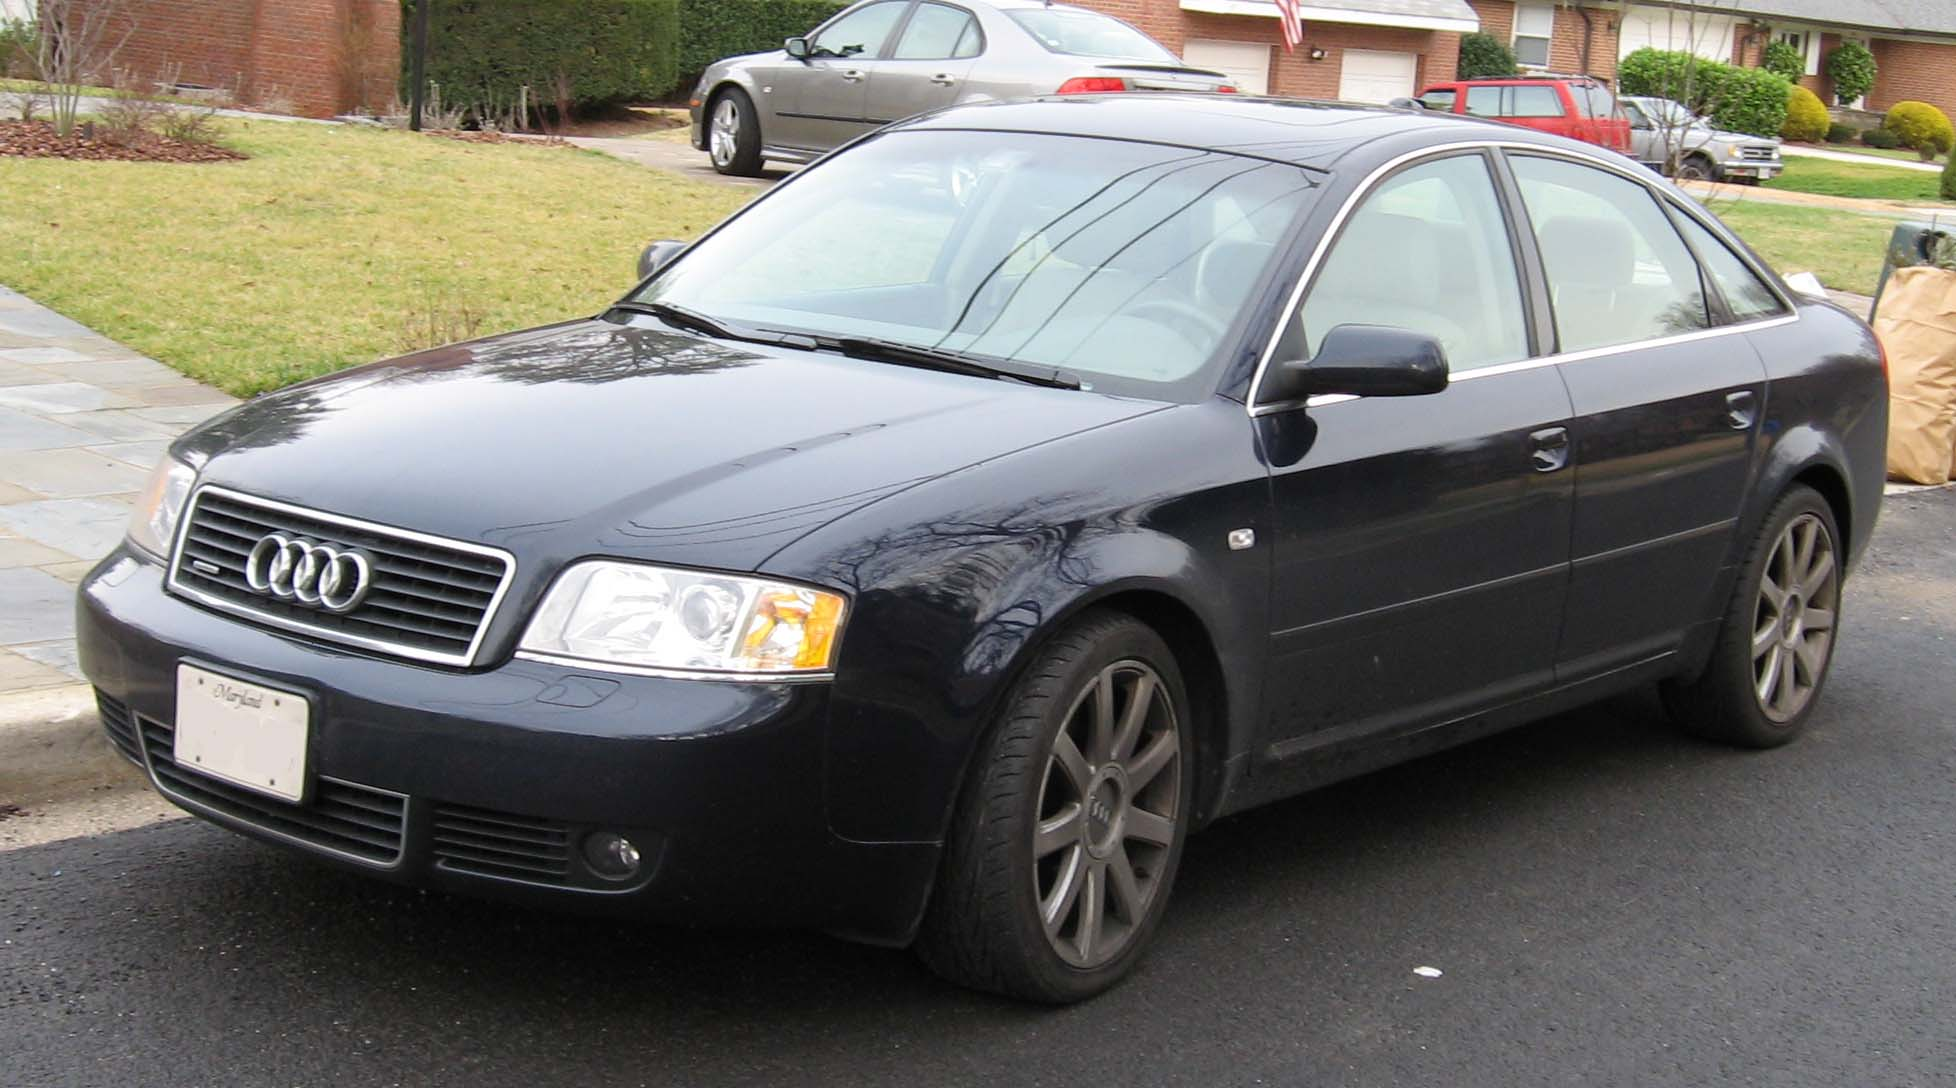 Audi rs4 b7 for sale usa